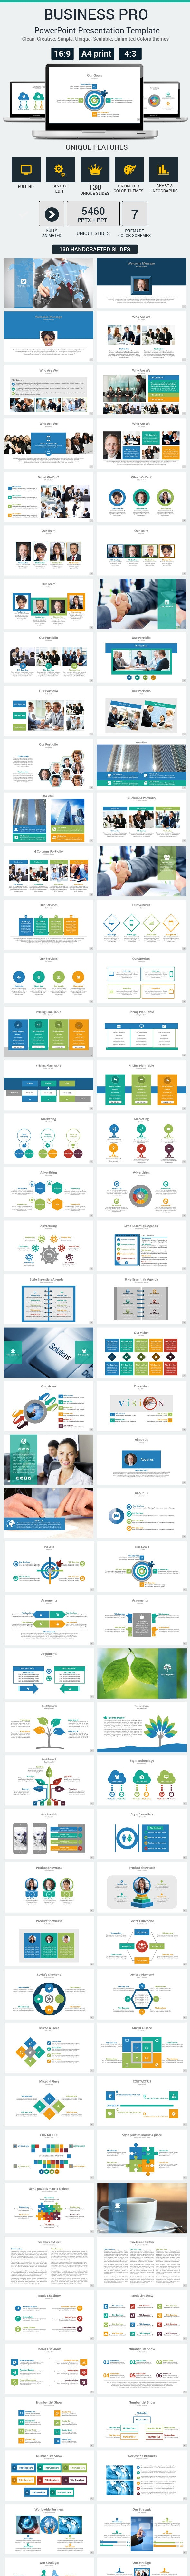 Business Pro PowerPoint Presentation Template - PowerPoint Templates Presentation Templates